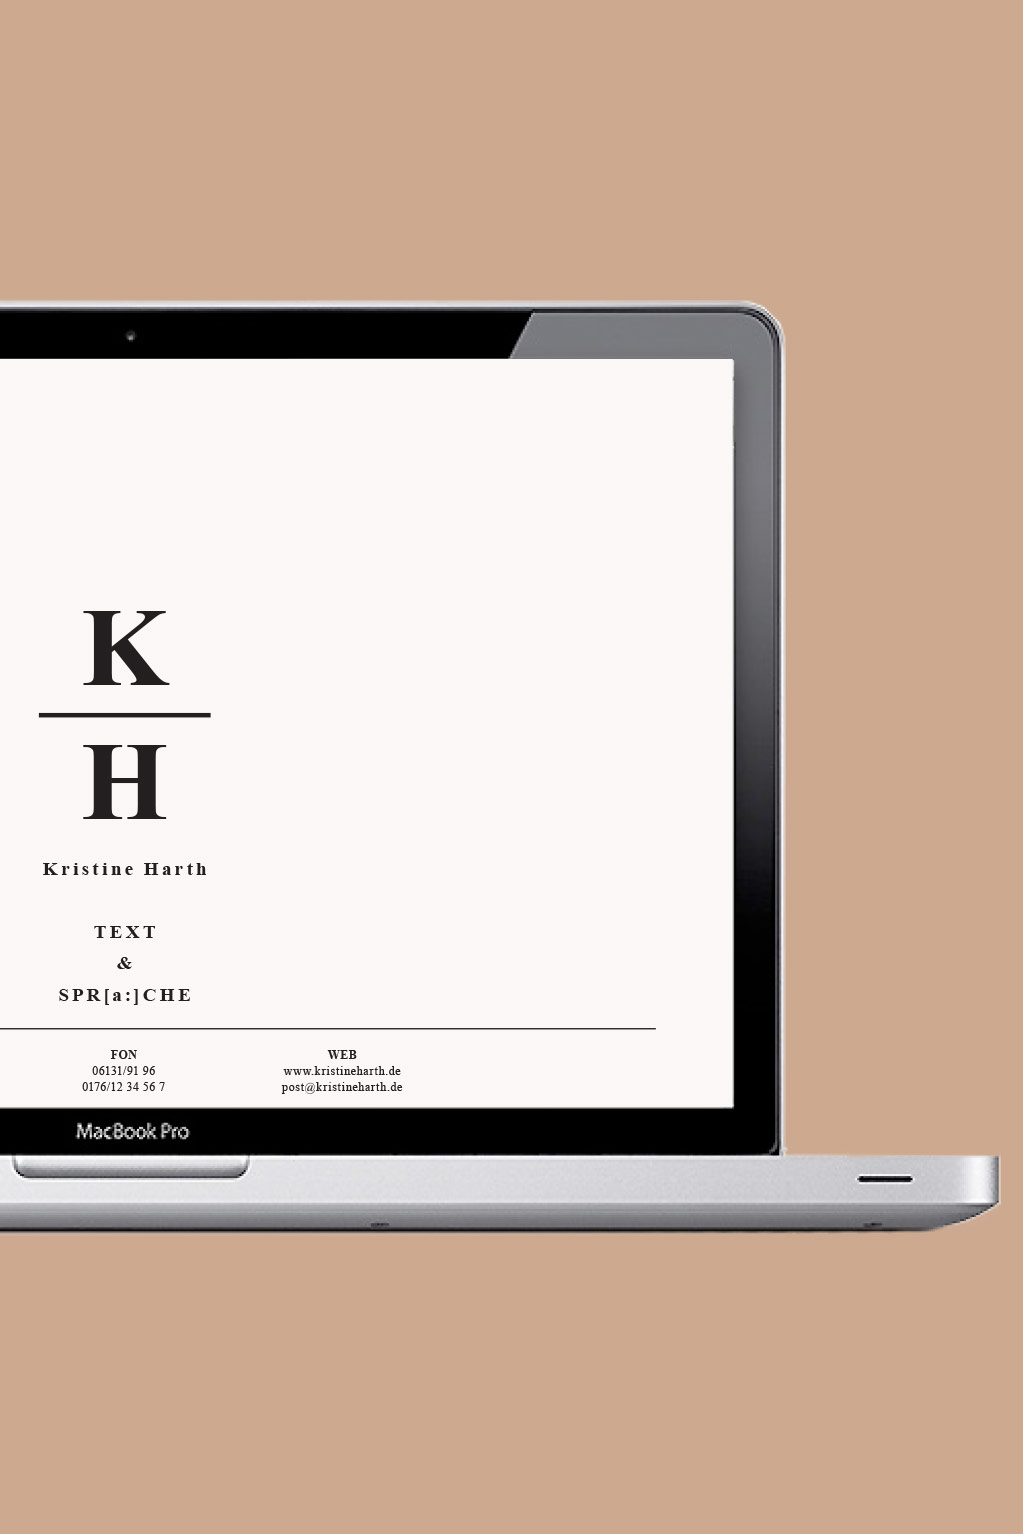 Kristine Harth | Corporate Design